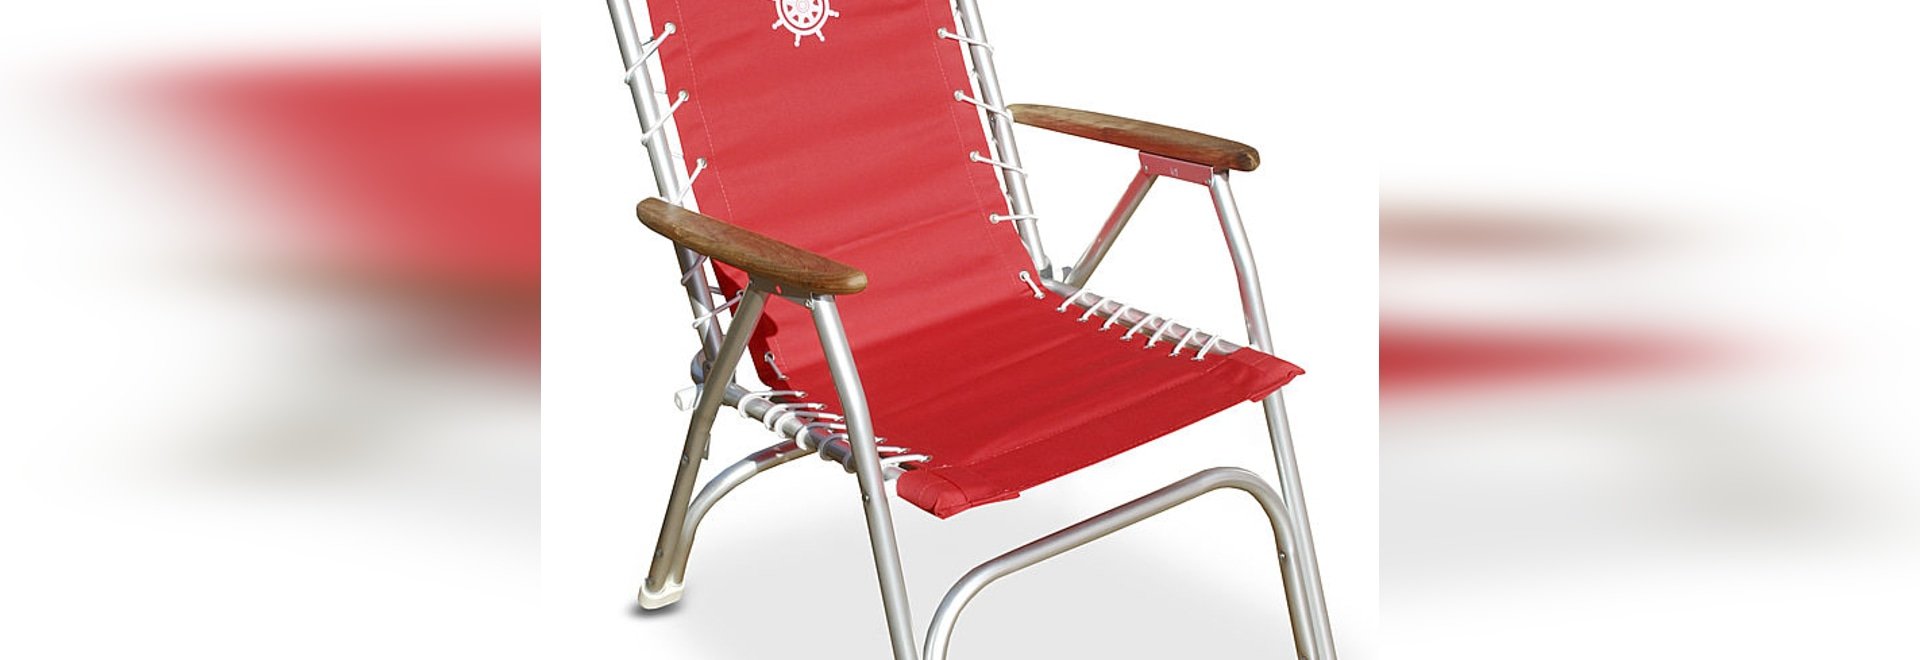 Is it time to renew your deck furniture? We have many suggestions to offer!